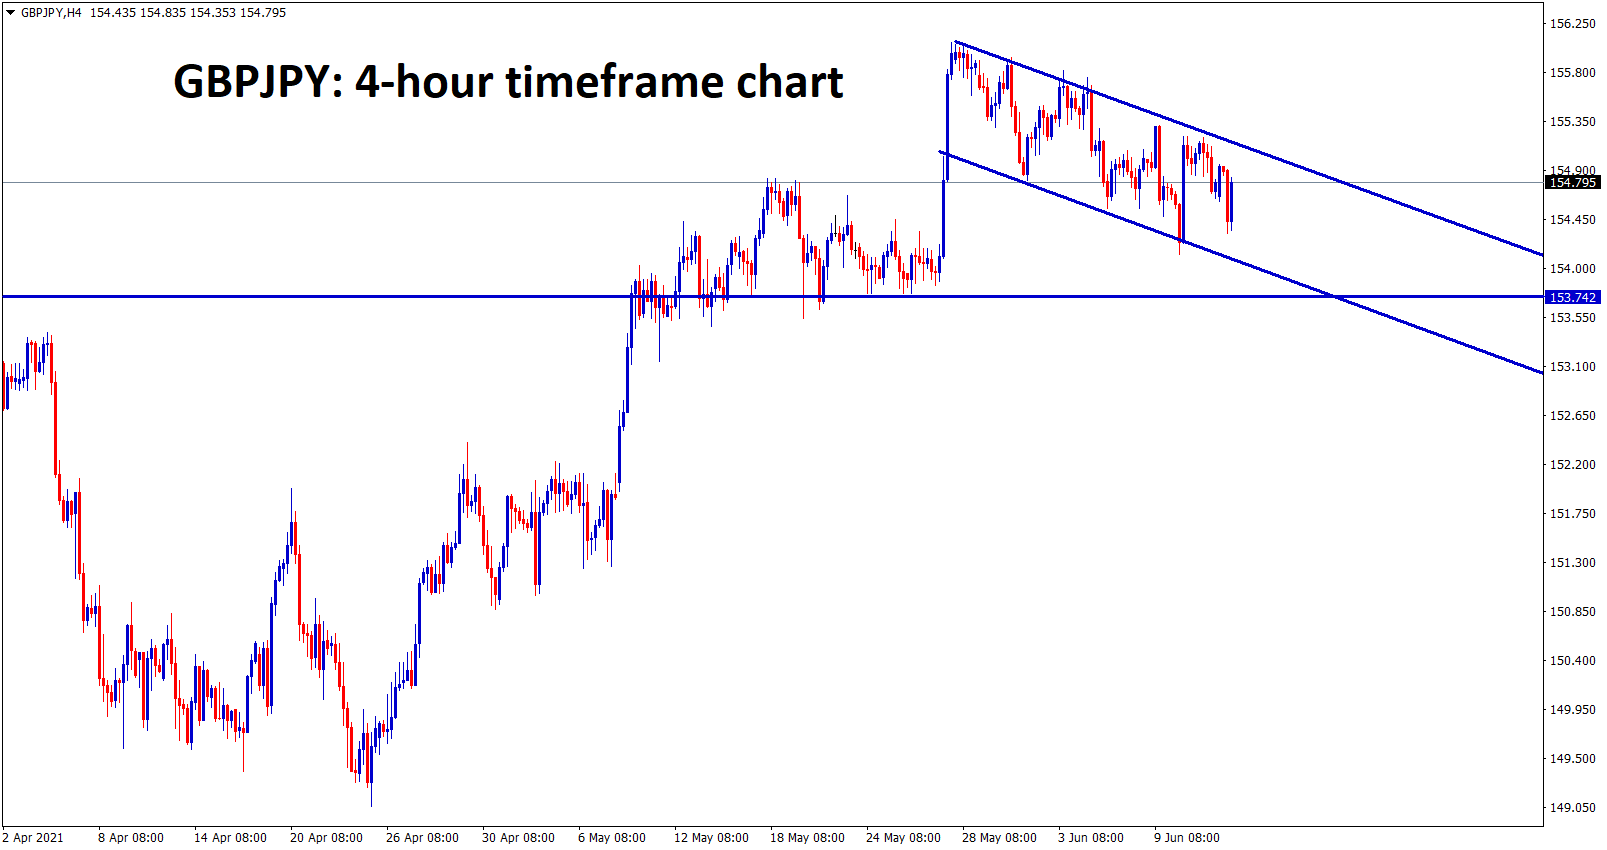 GBPJPY is forming a flag pattern in the uptrend